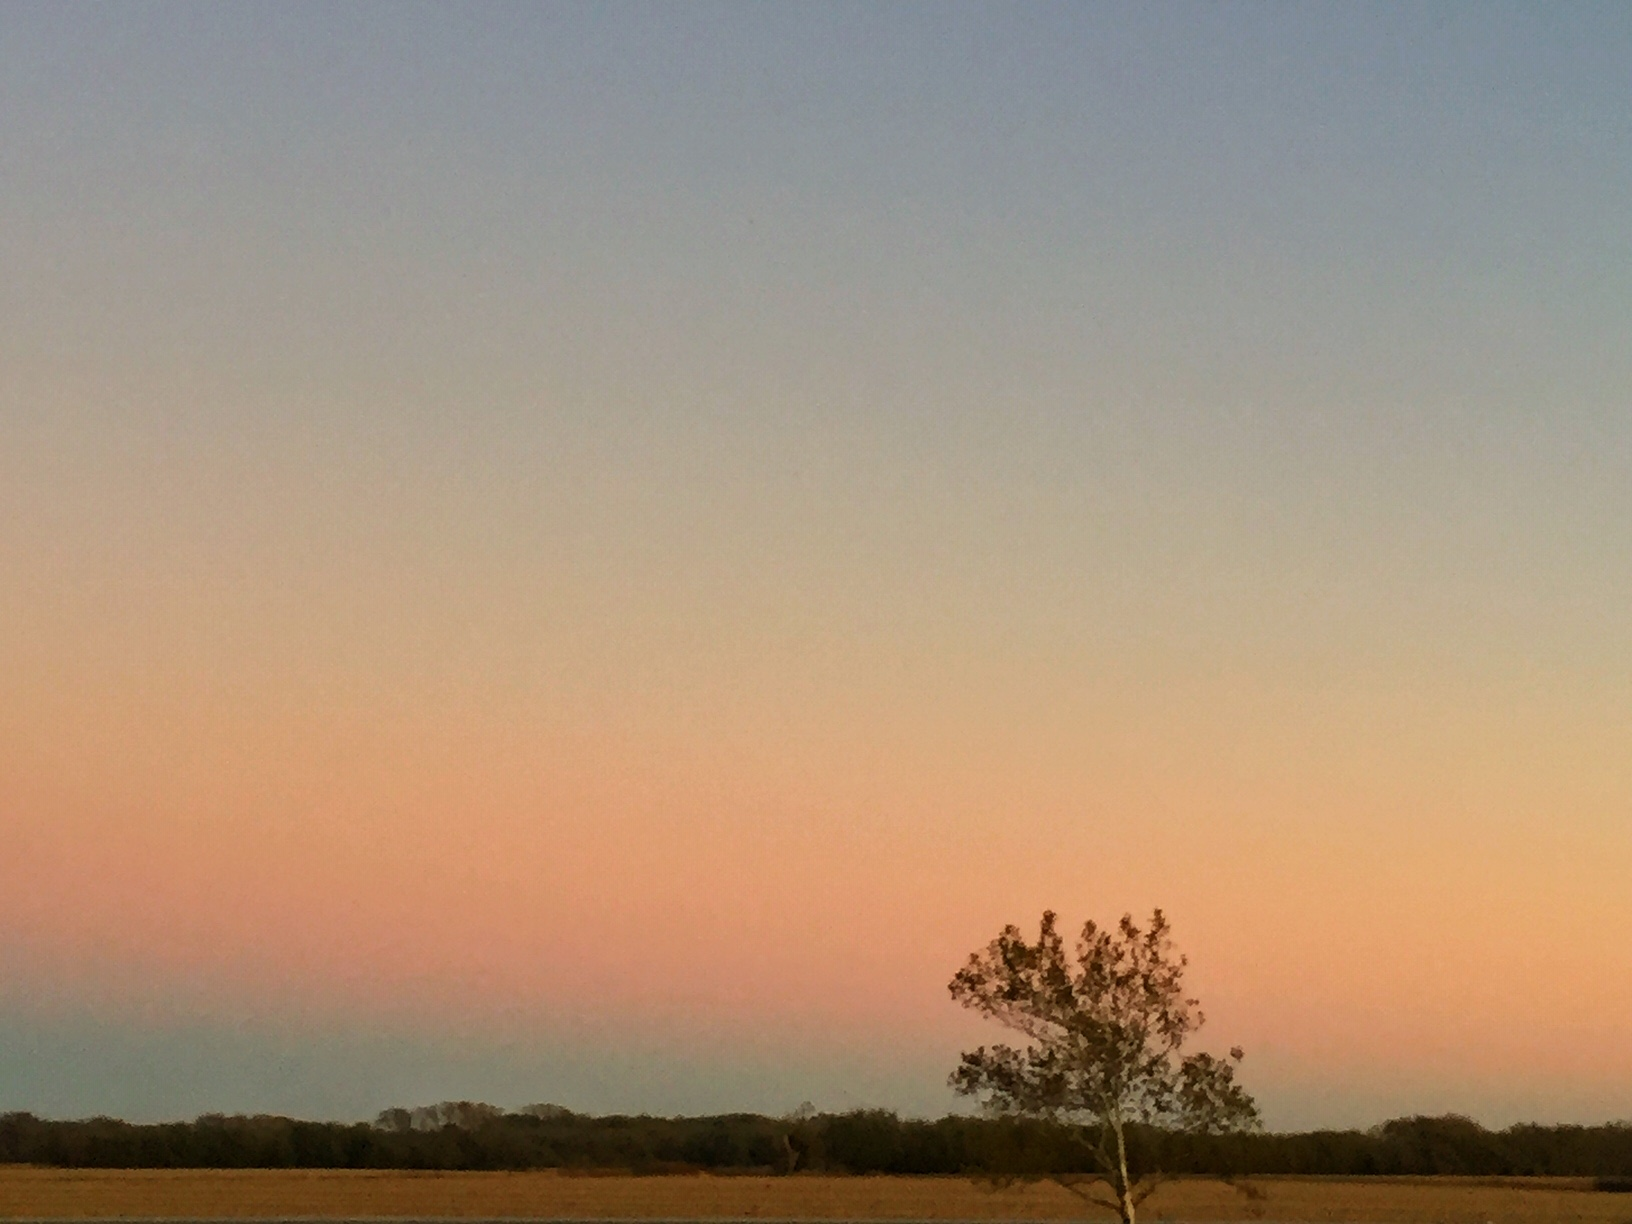 Not a sunset, per se, but a simple Kansas skyline to the east AT sunset, in the Flint Hills.